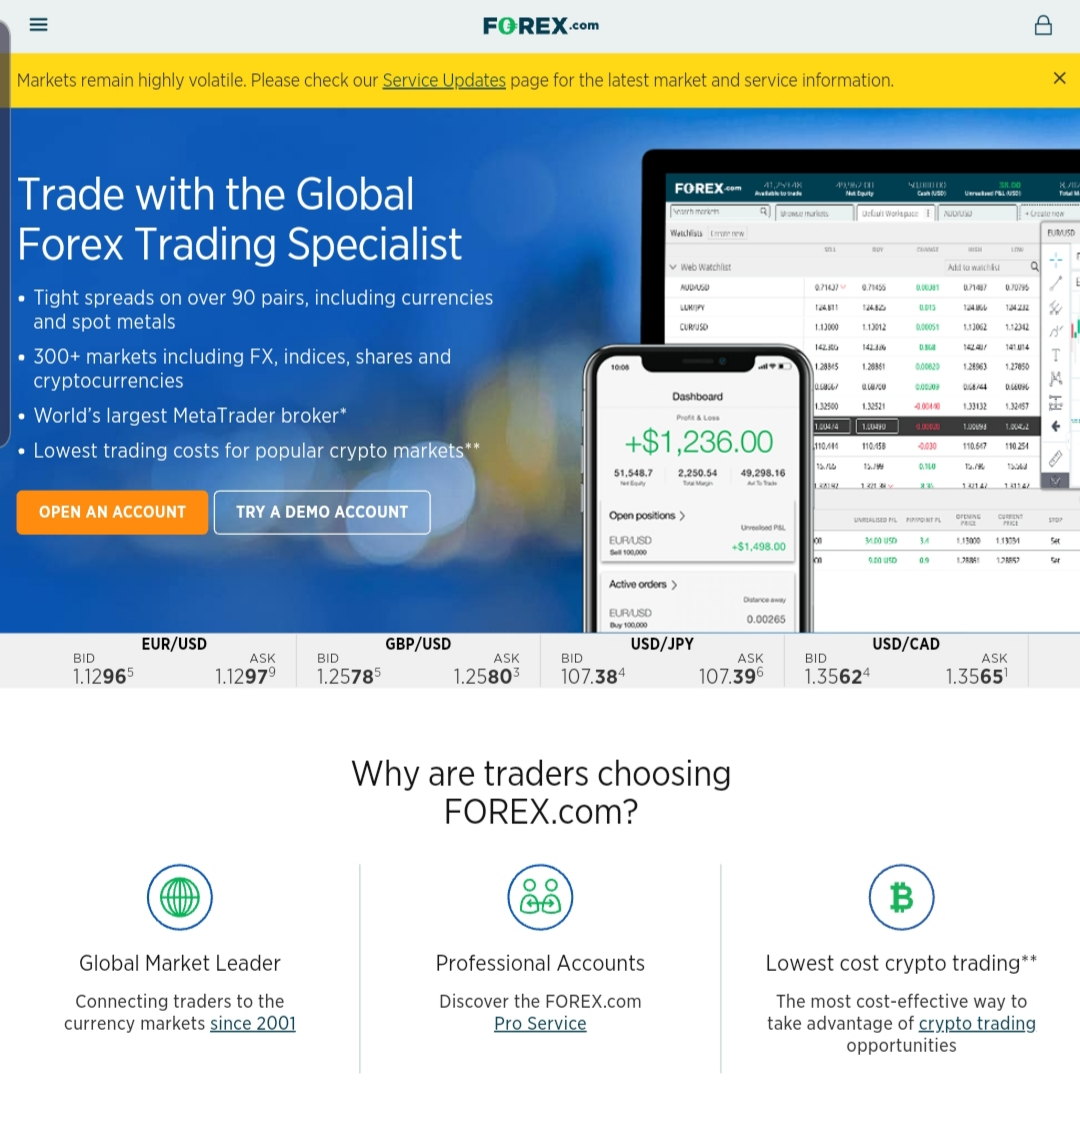 Fxctraders.com review